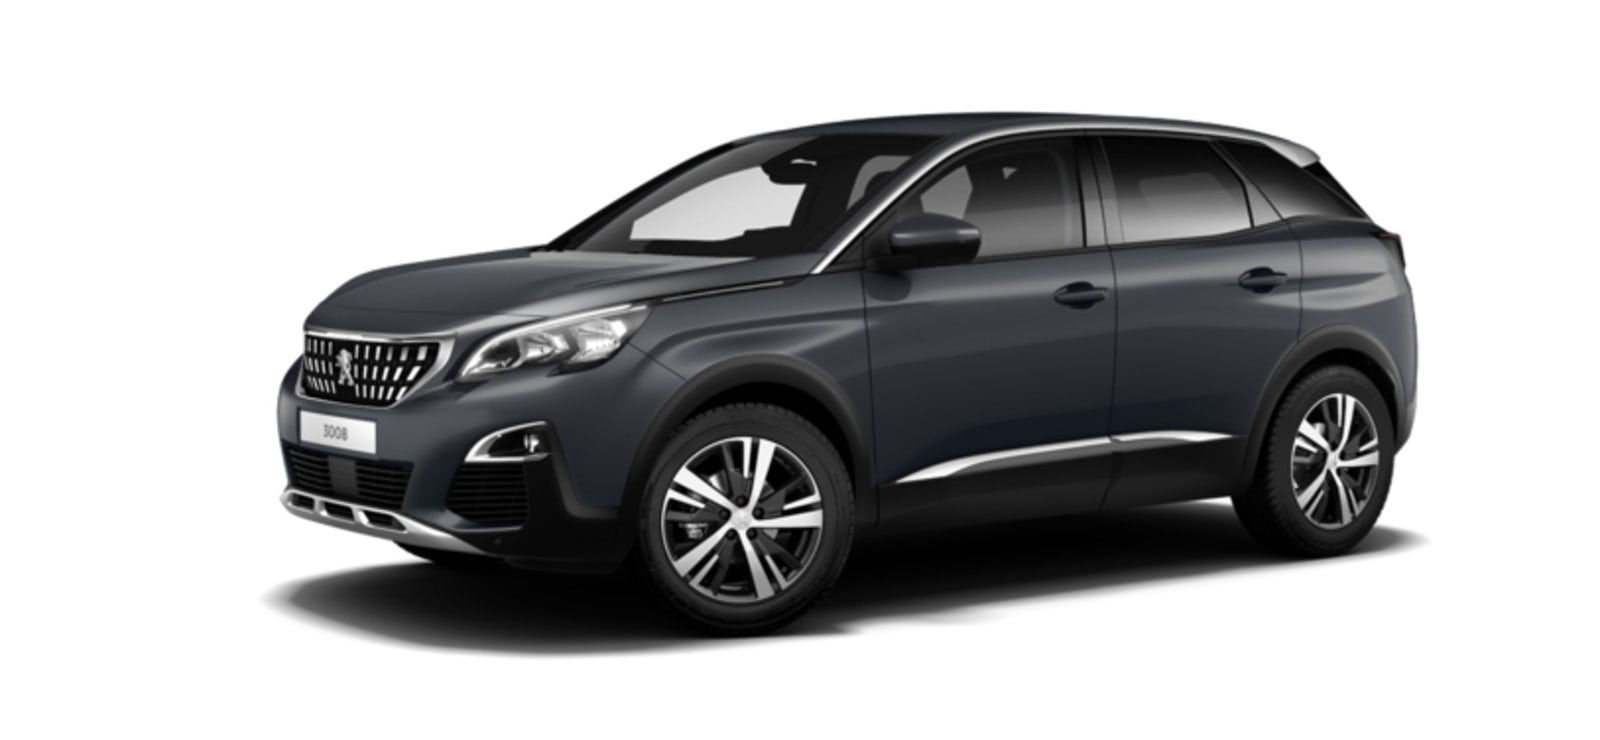 Peugeot 3008 colours guide and prices | carwow